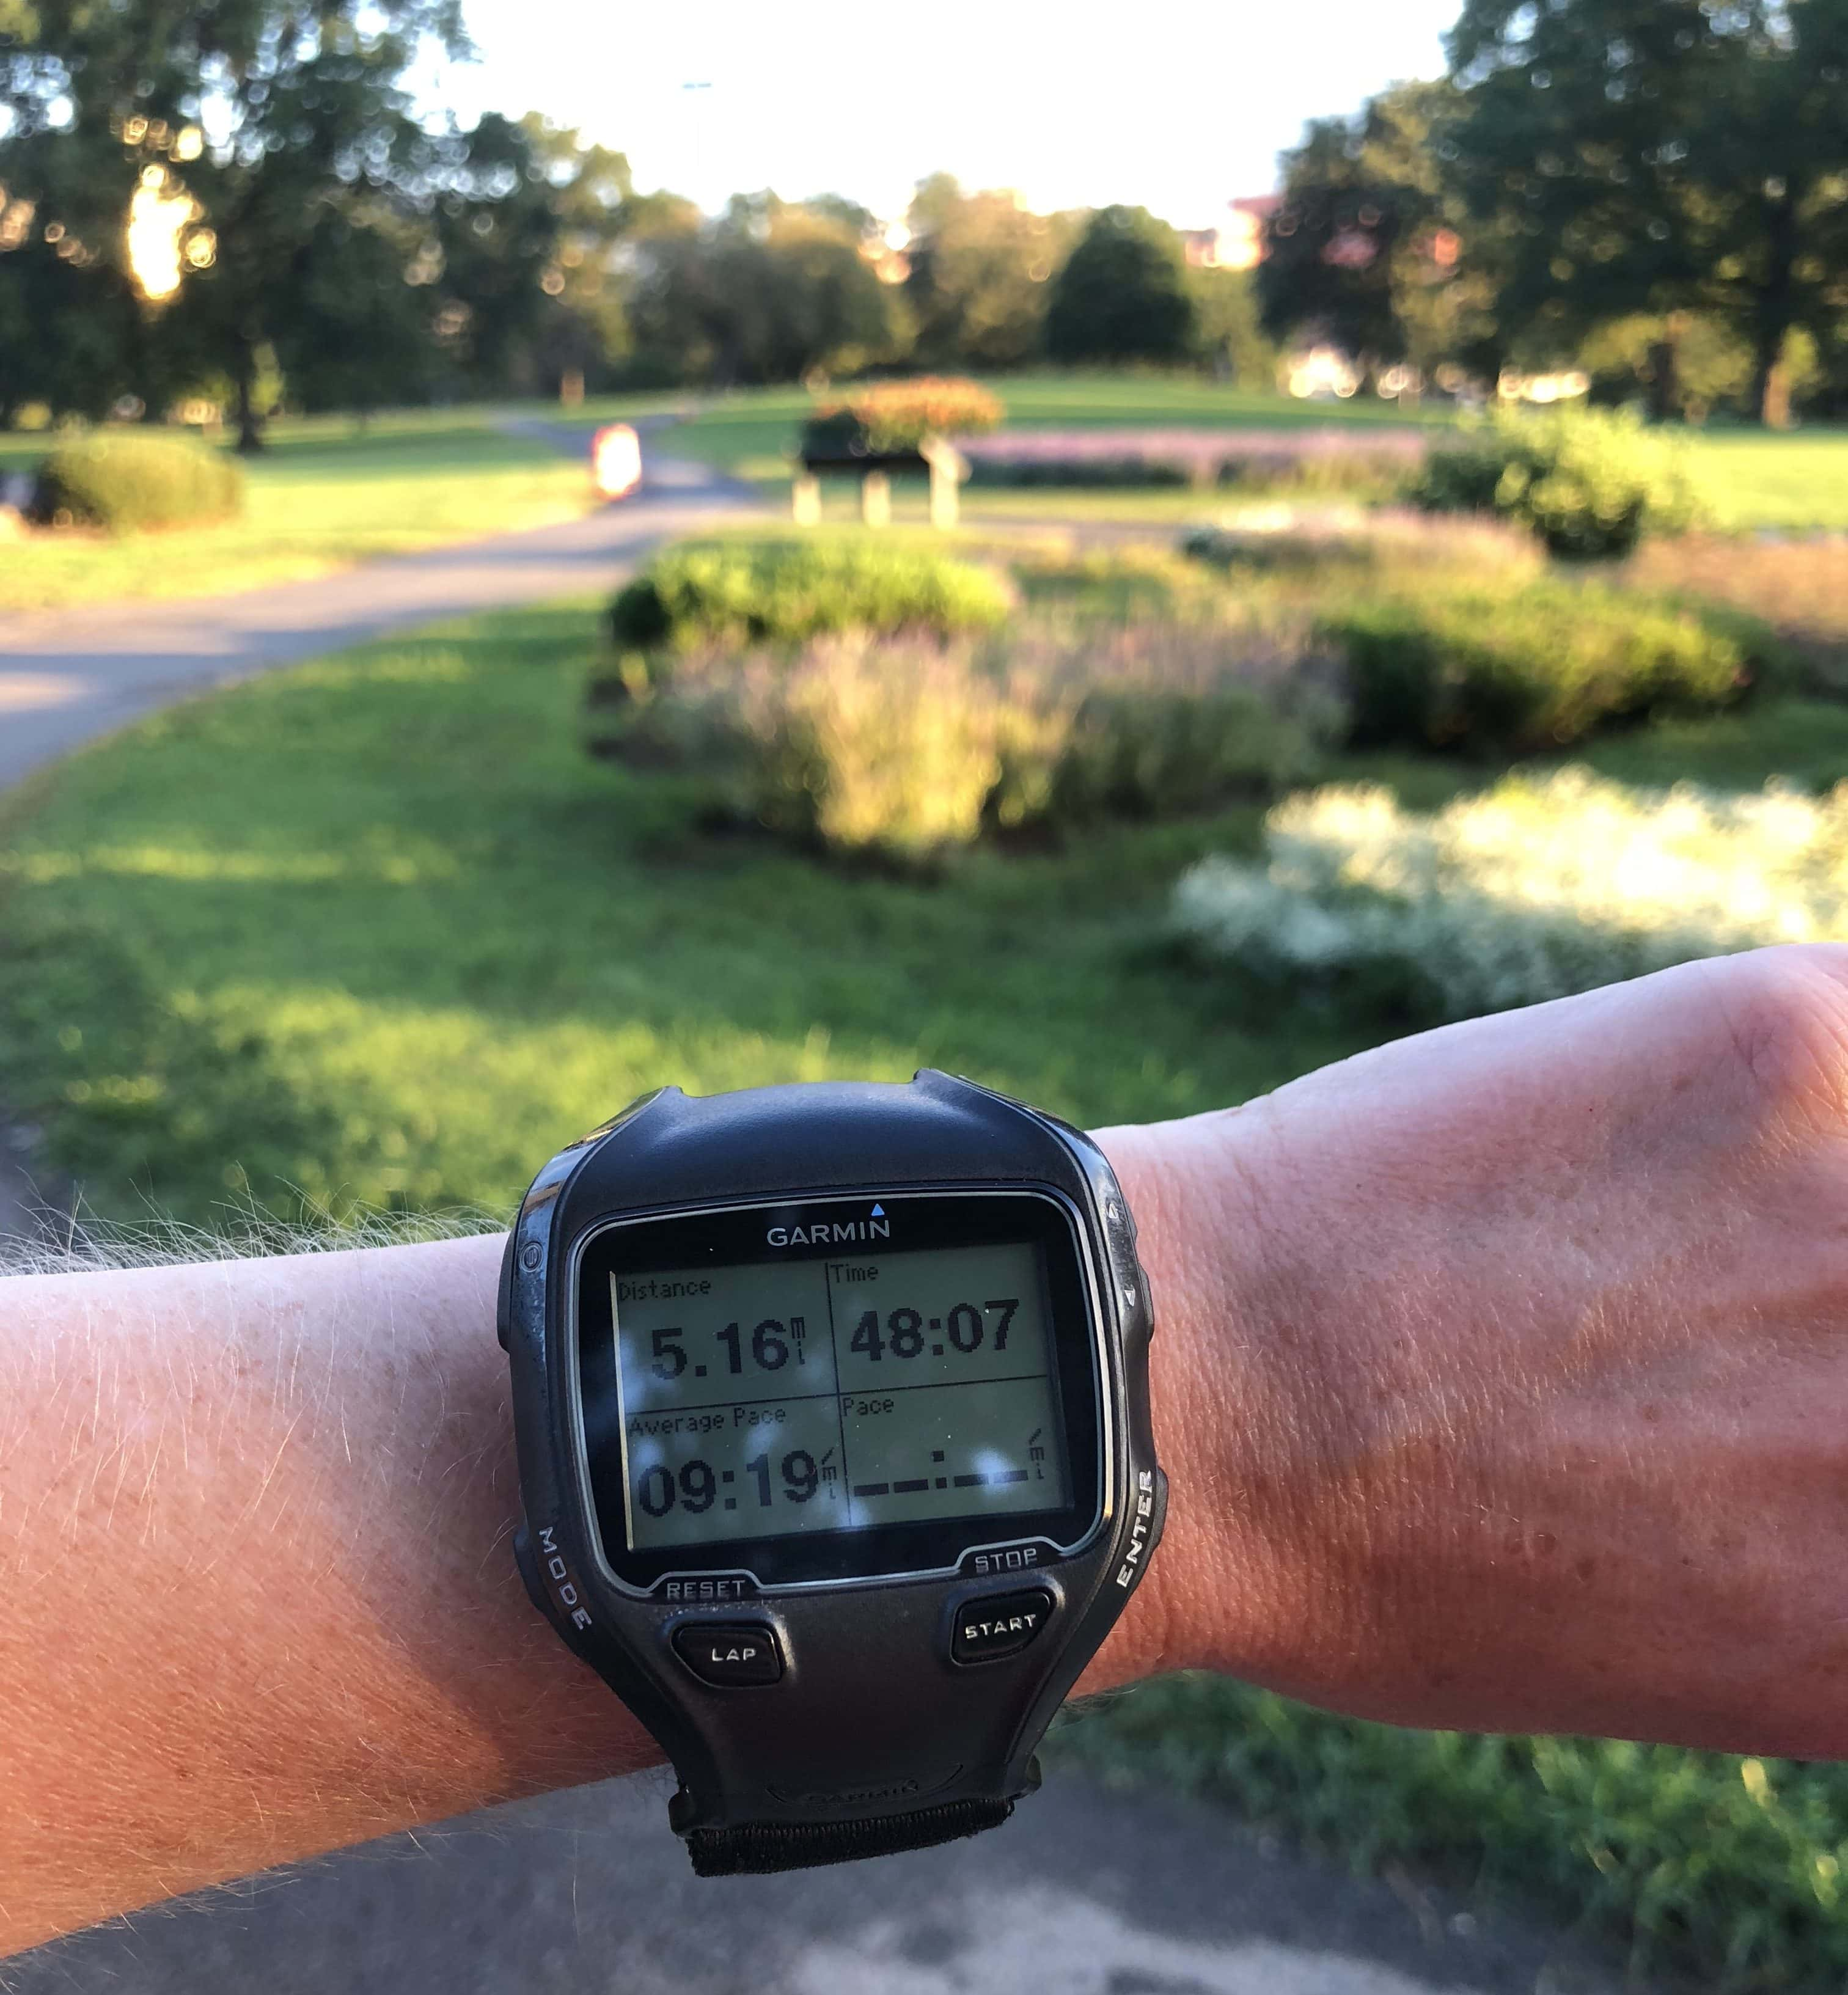 The Best Fall Sunrise Run Fannetastic Food Registered Dietitian Booster Blw 60 Im Writing This Post During Naptime And Riese Is A Notoriously Short Napper So I Better Say Goodbye Matt Are Going Off On An Anniversary Trip